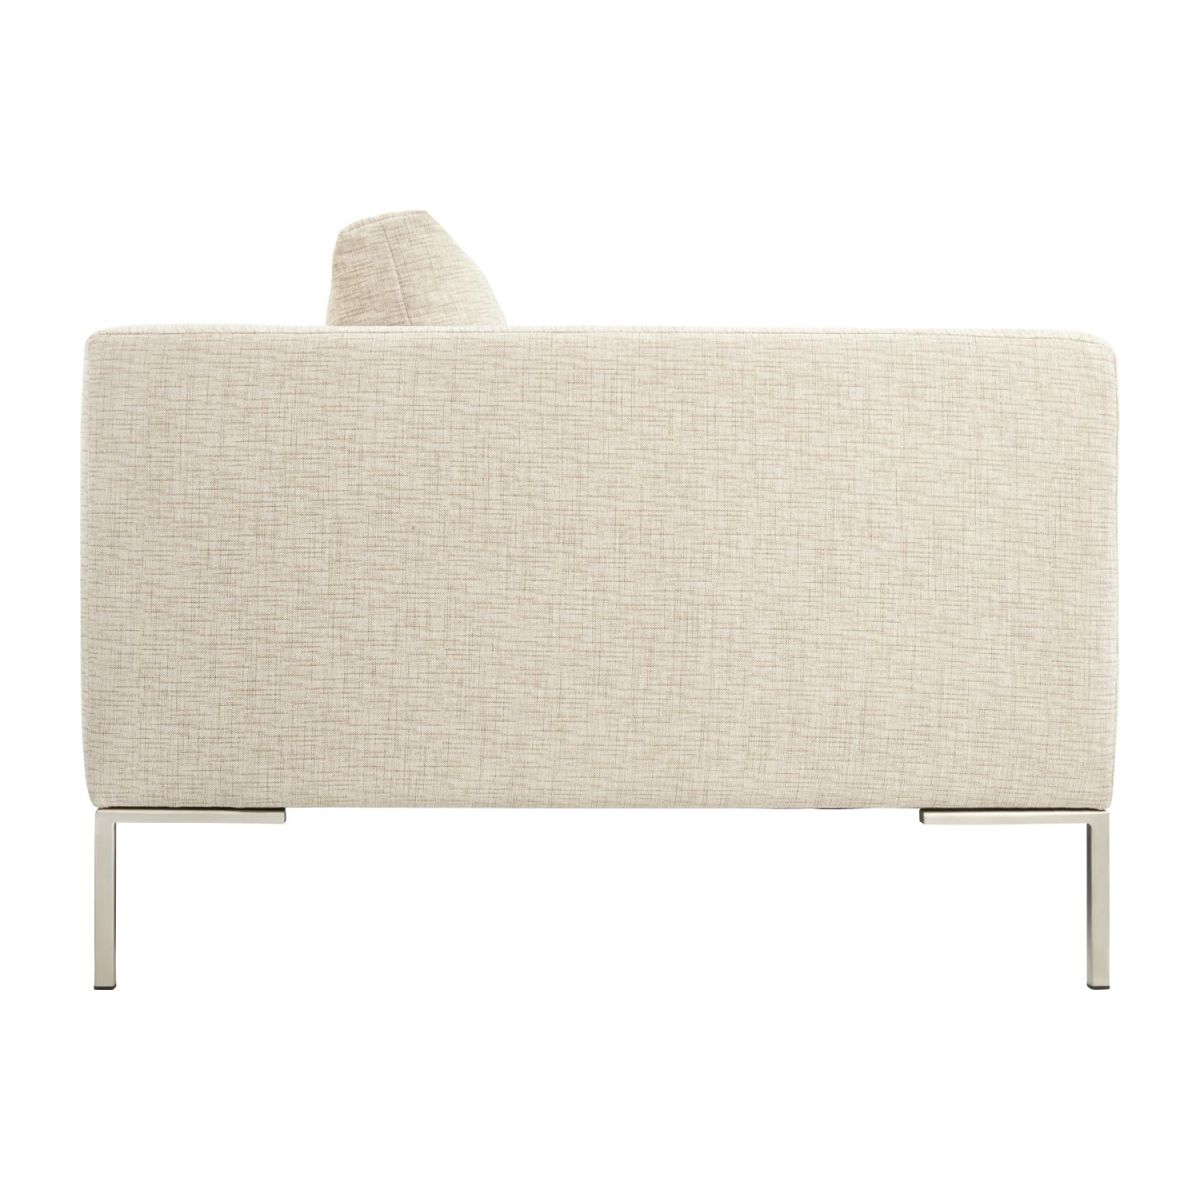 3 seater sofa in Ancio fabric, nature n°5